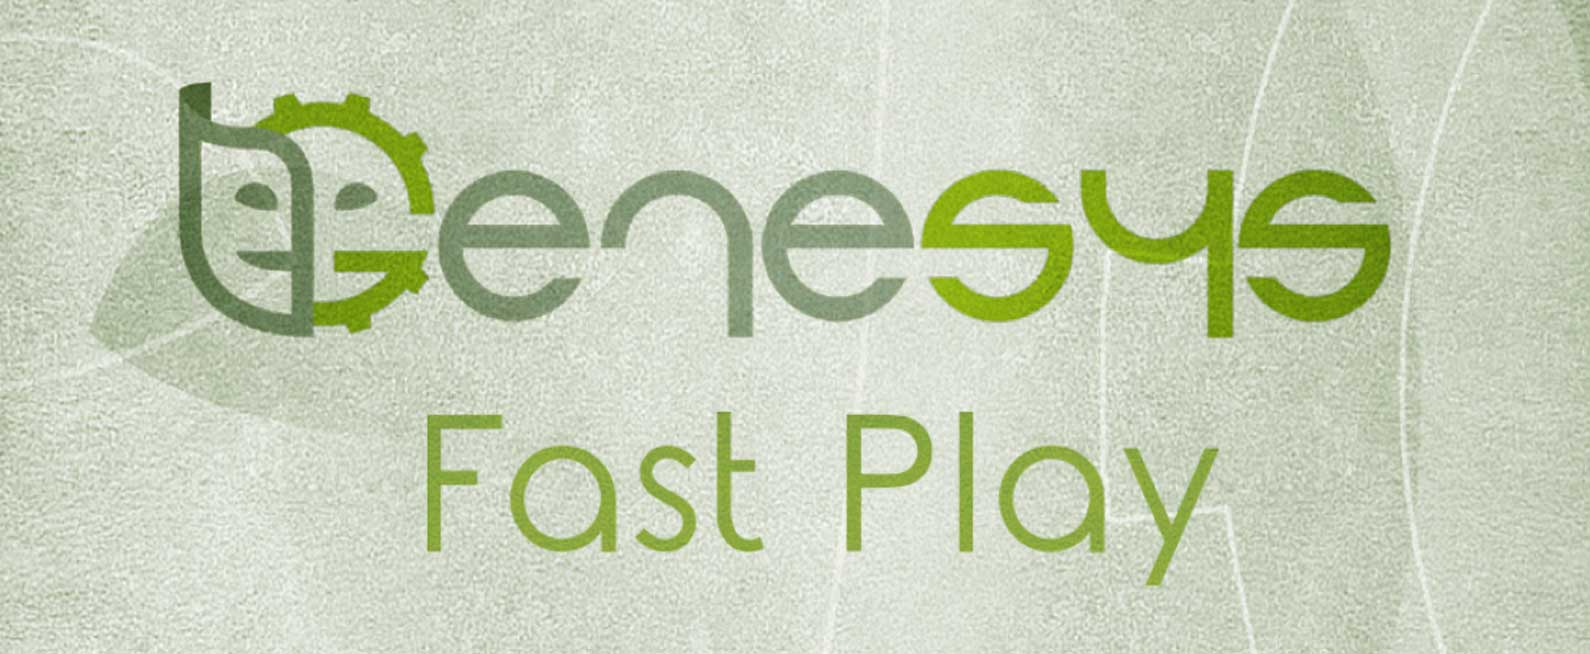 GeneSys-Fast-Play-Large